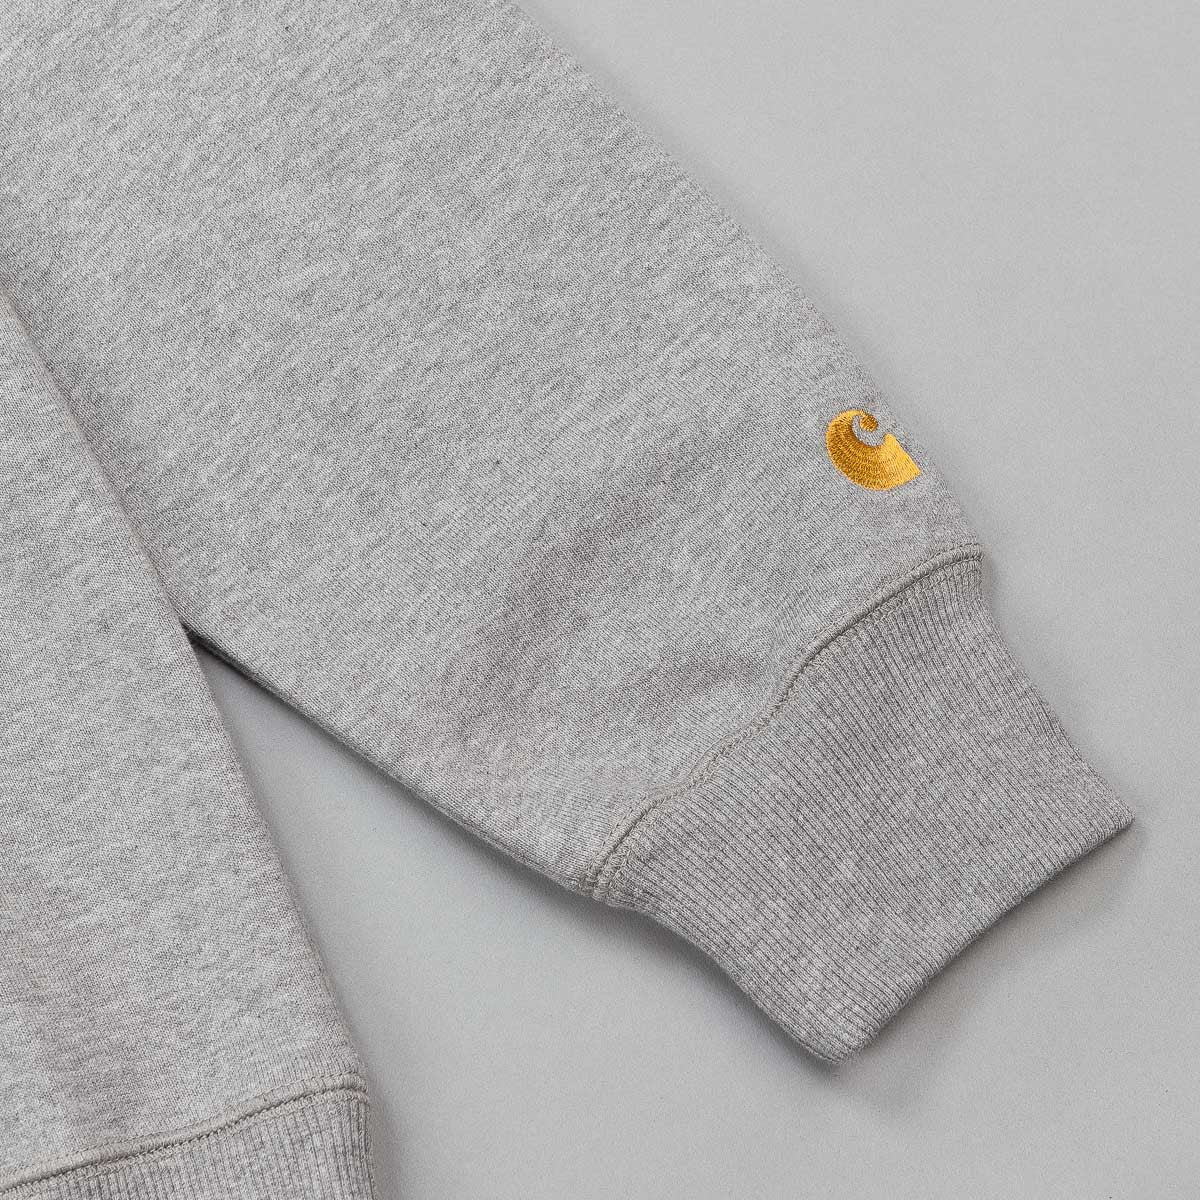 Carhartt Chase LT Hooded Sweatshirt - Heather Grey